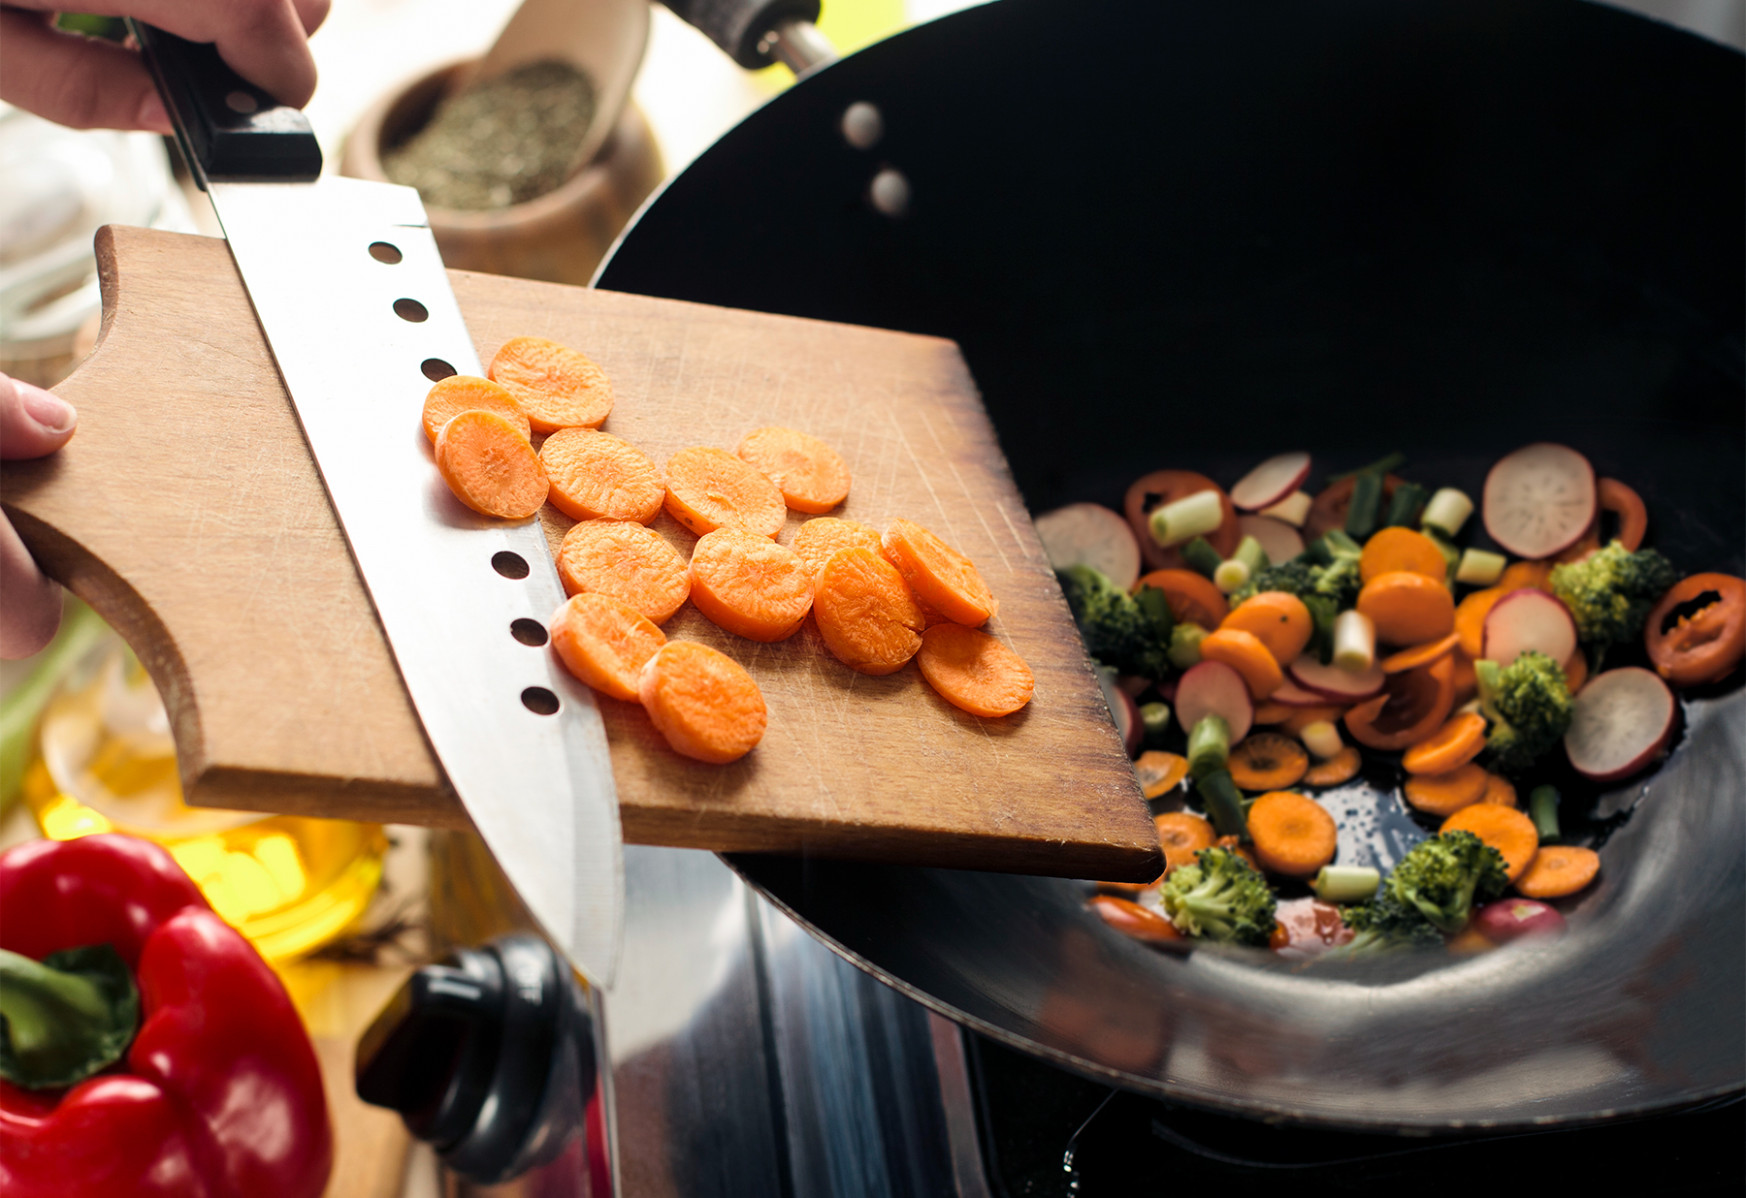 Food Waste: 11 Meal-Prep Tips So You Cut Down on Wasted Food - recipes to reduce food waste